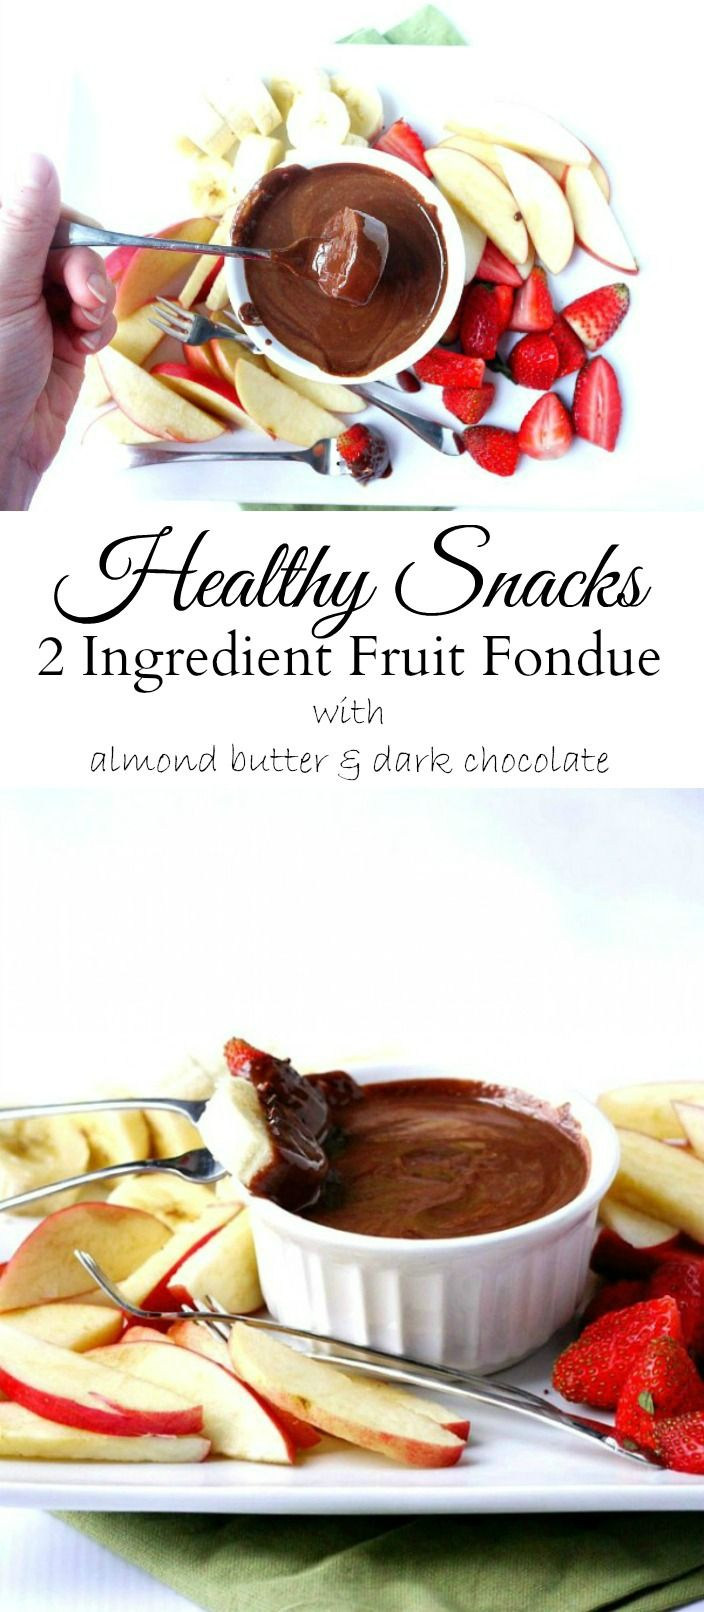 This 2 Ingredient Fruit Fondue with almond butter & dark chocolate are ...